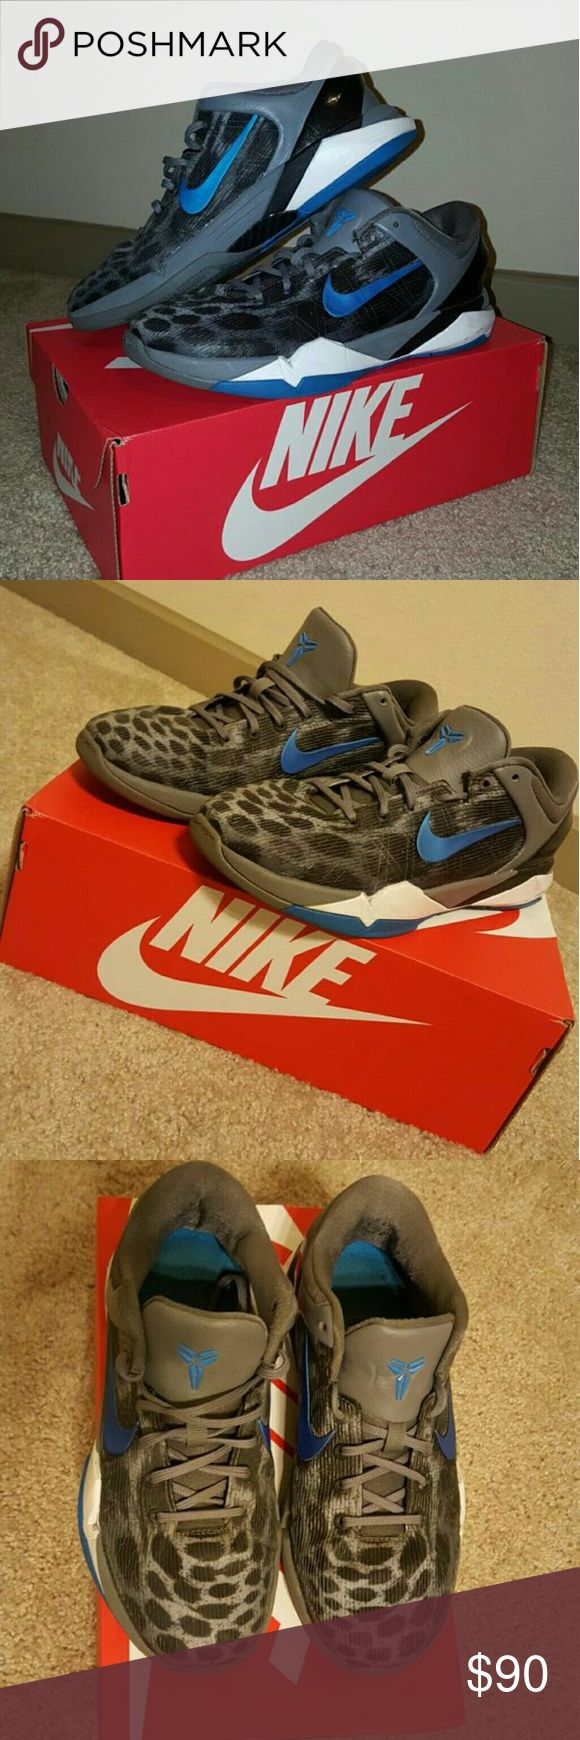 Nike Kobe Snow Leopard Nike Kobe Snow Leopard Nike Shoes Sneakers